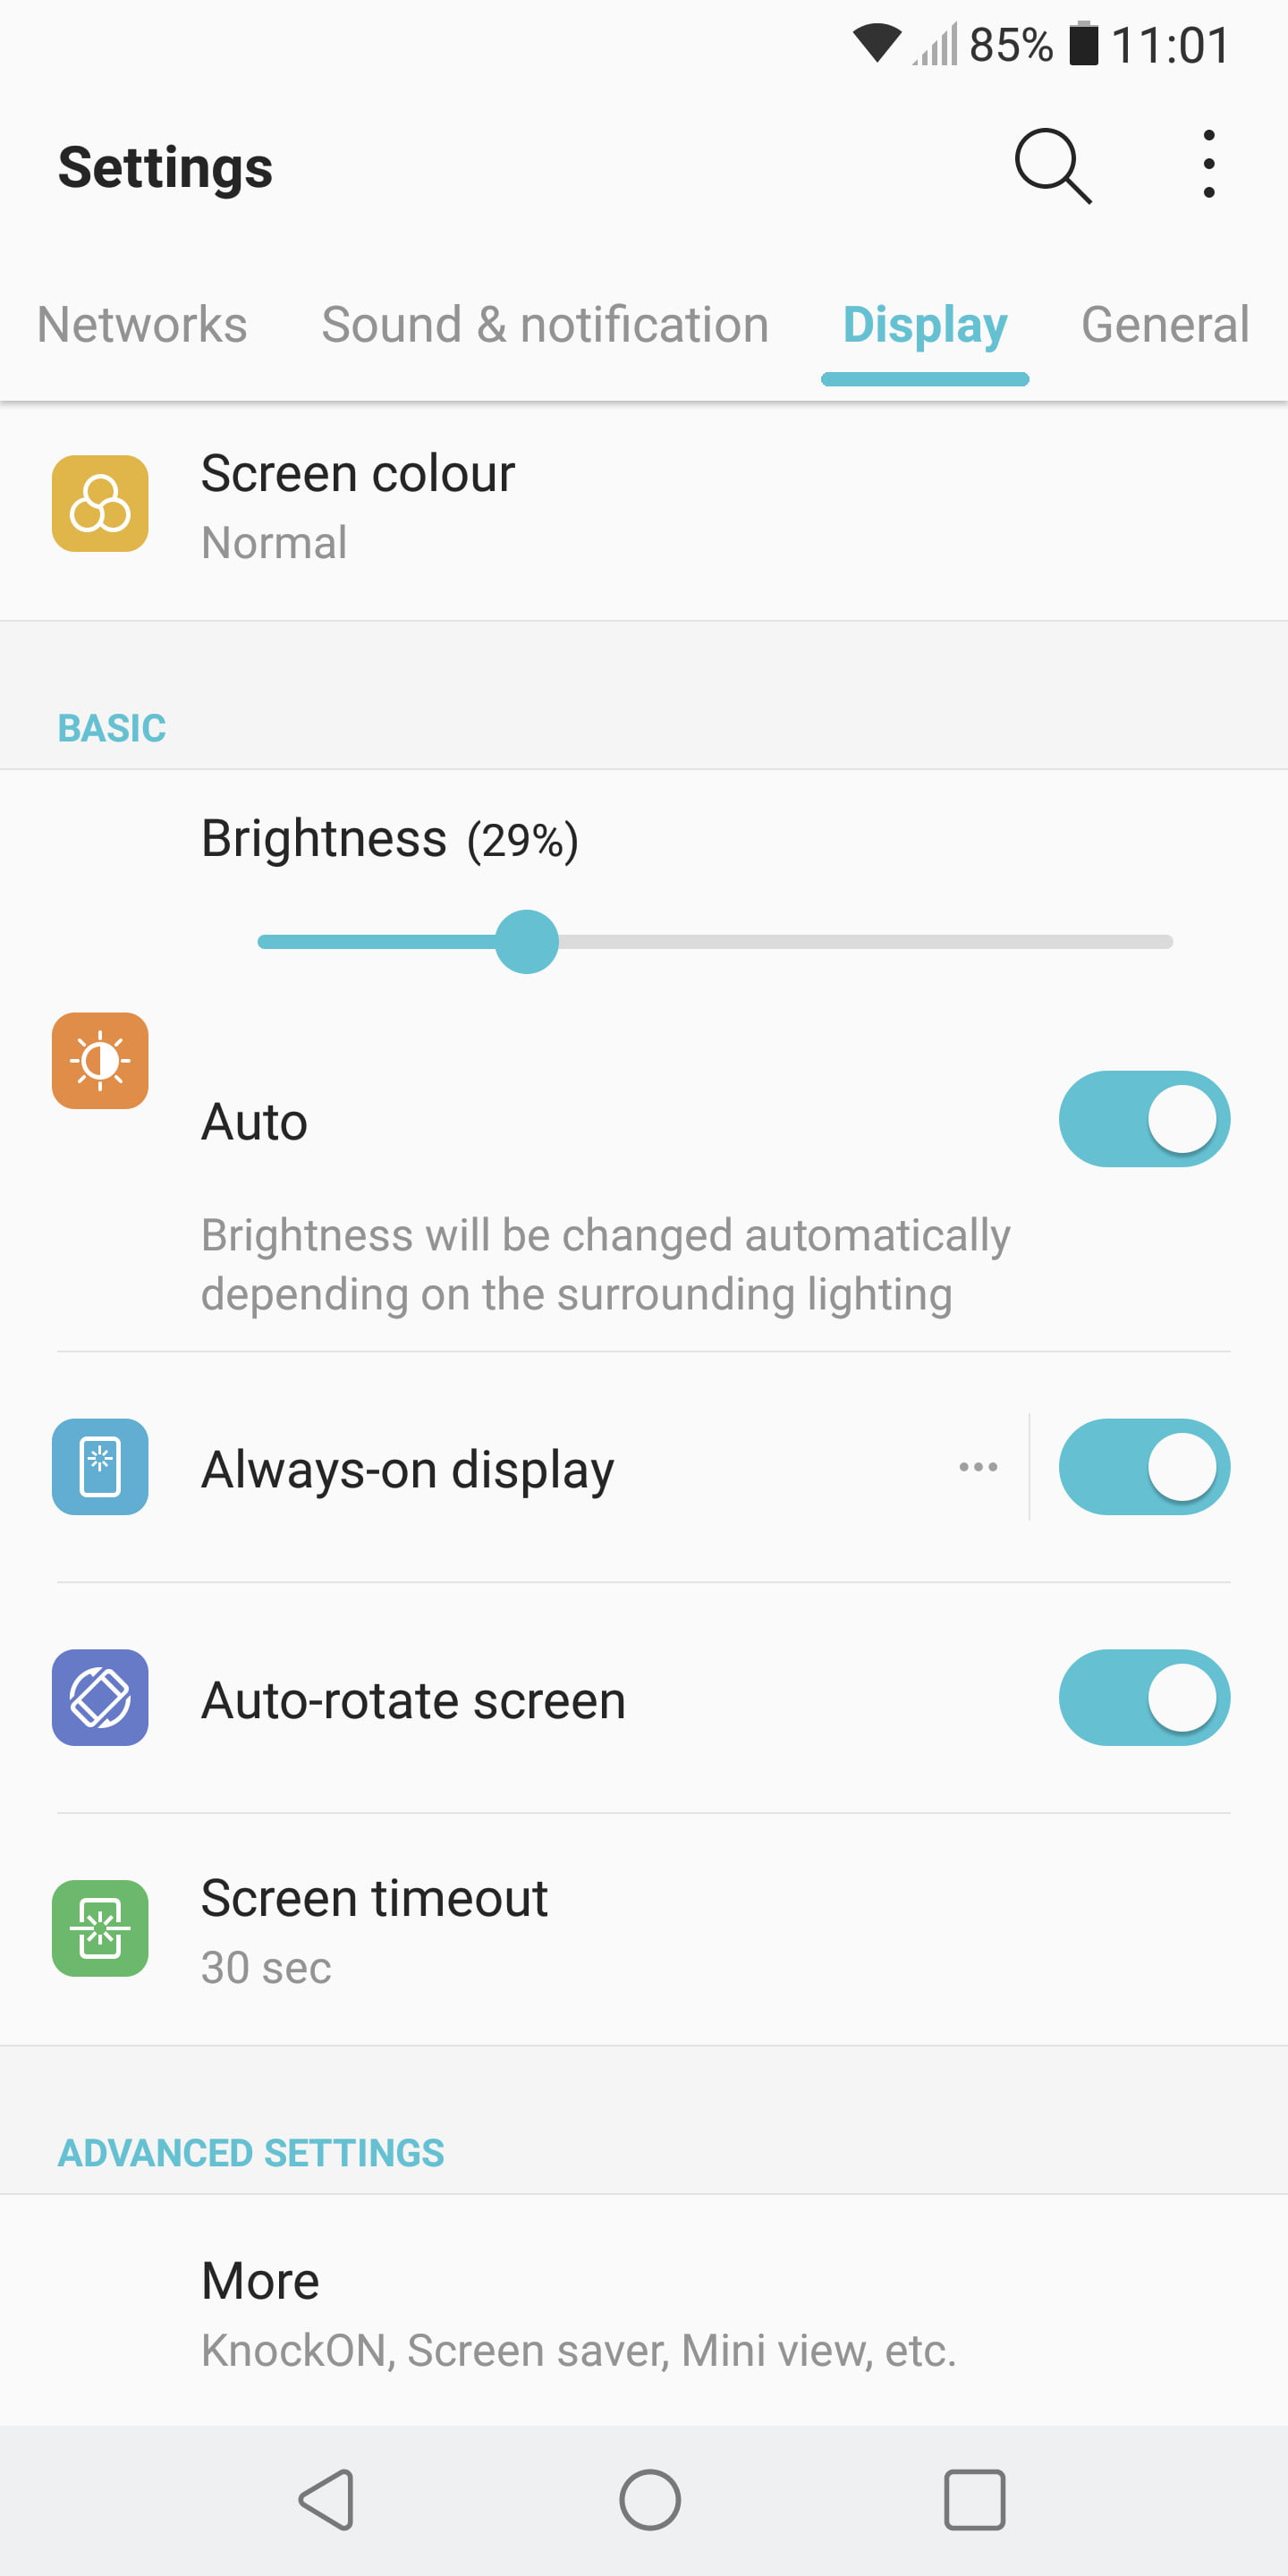 The Best LG V30 Tips and Tricks to Help You Get More from